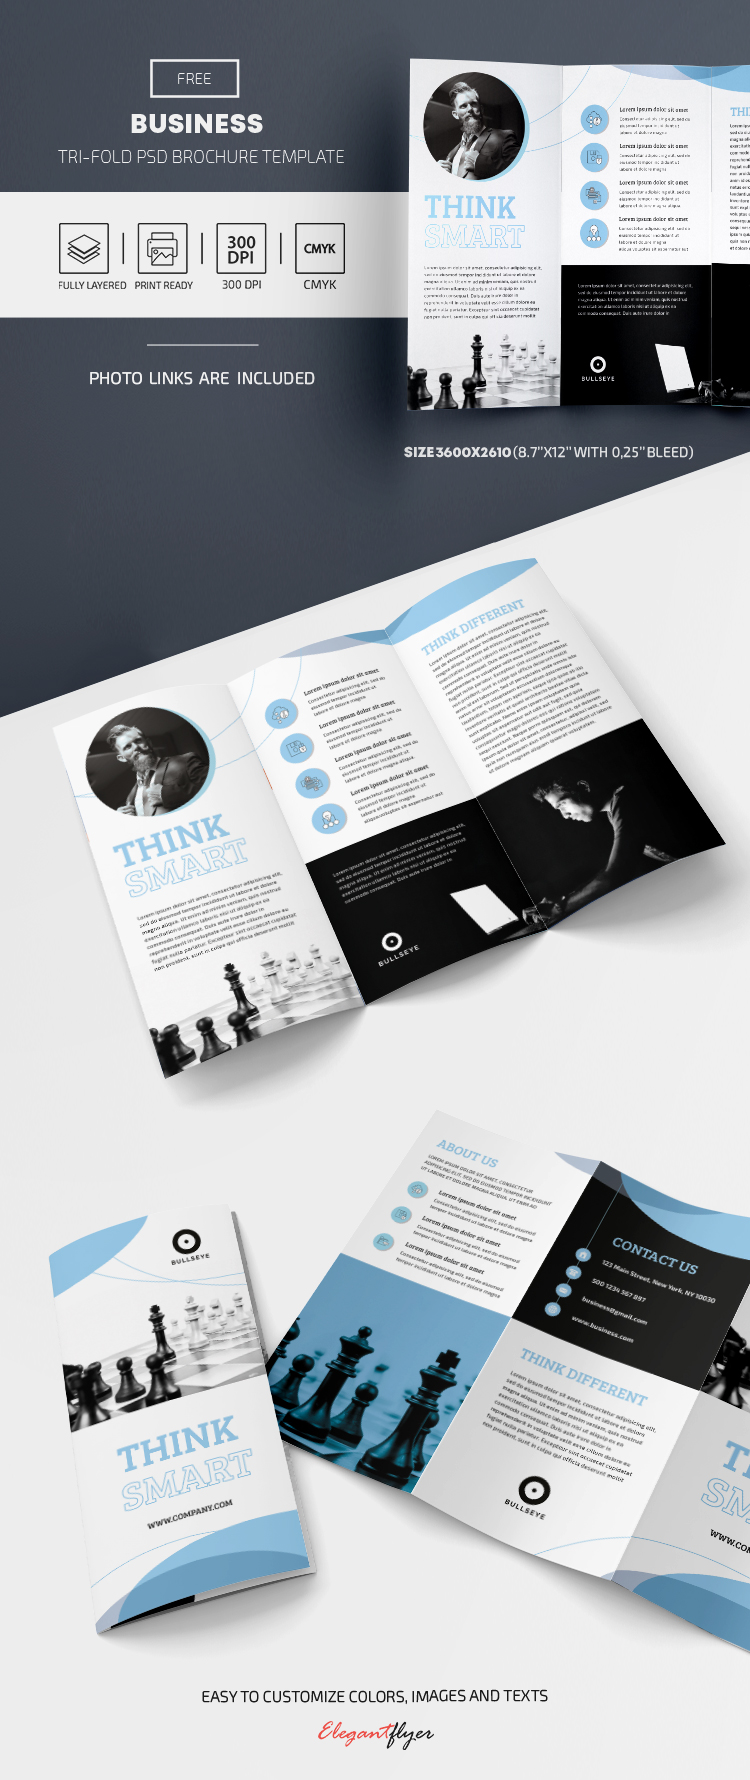 Business – Free Tri-Fold Brochure Template in PSD